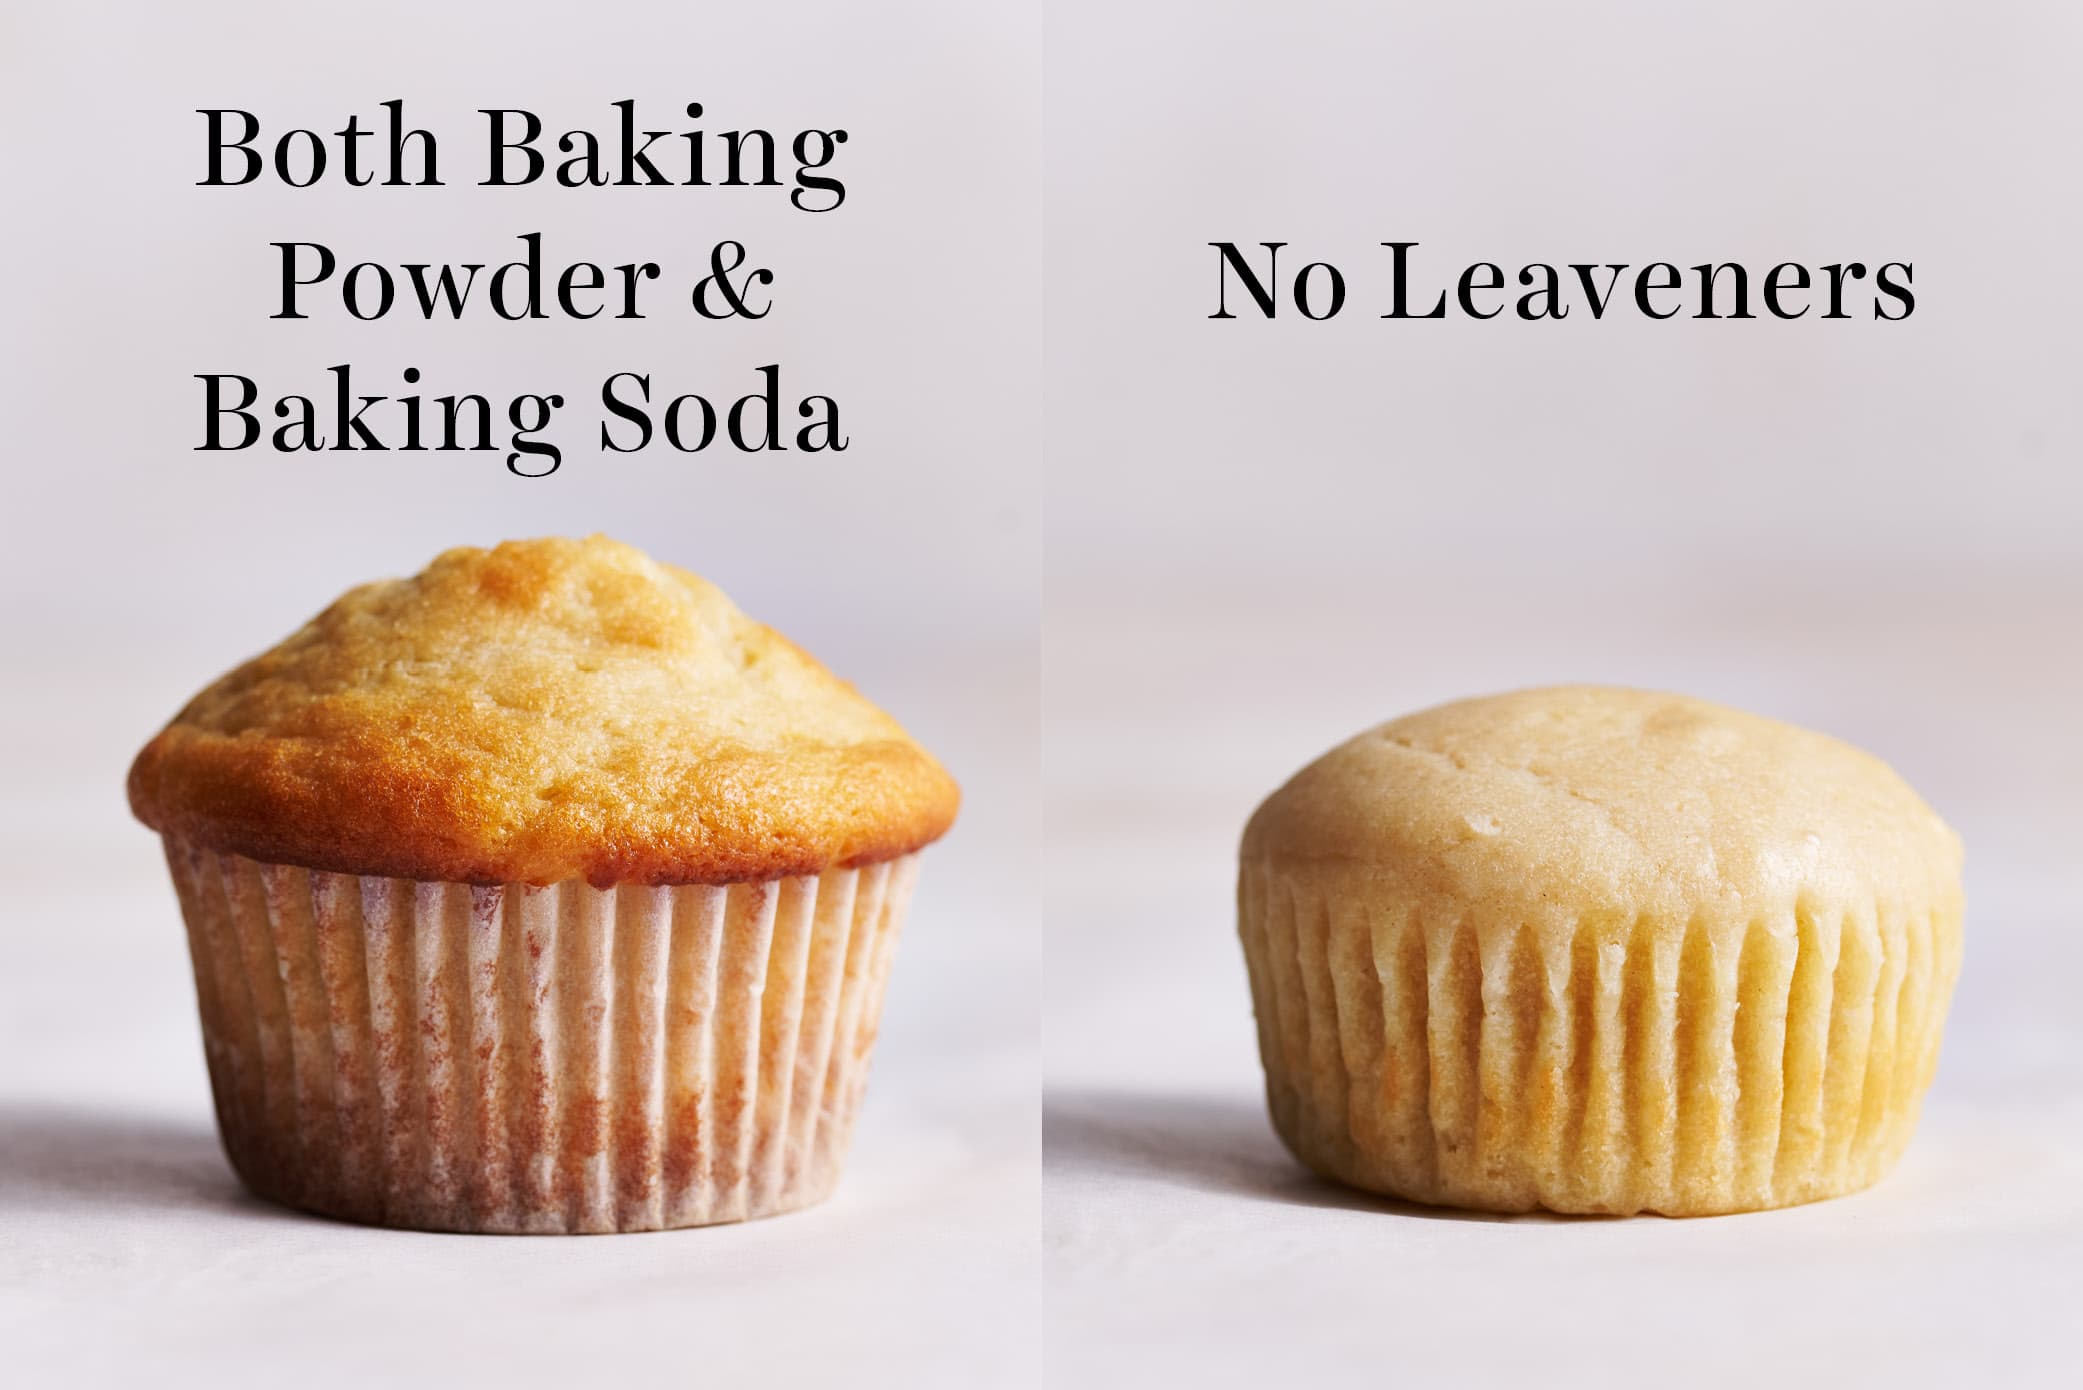 comparison of homemade muffins made with baking powder vs baking soda